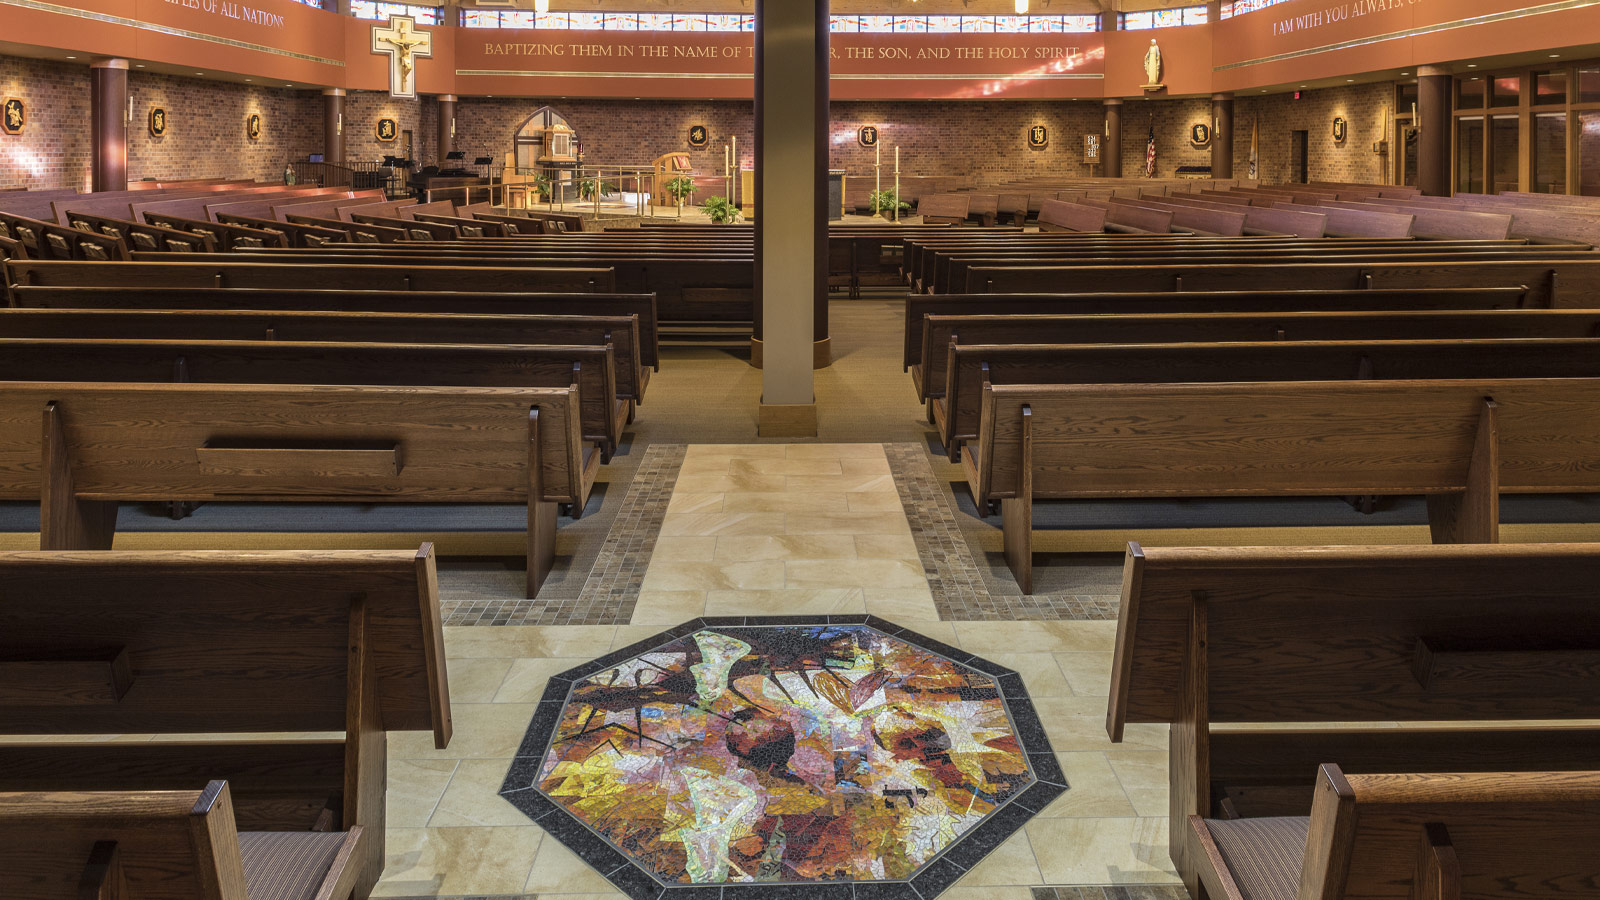 Holy Spirit Catholic Church Interior Renovations